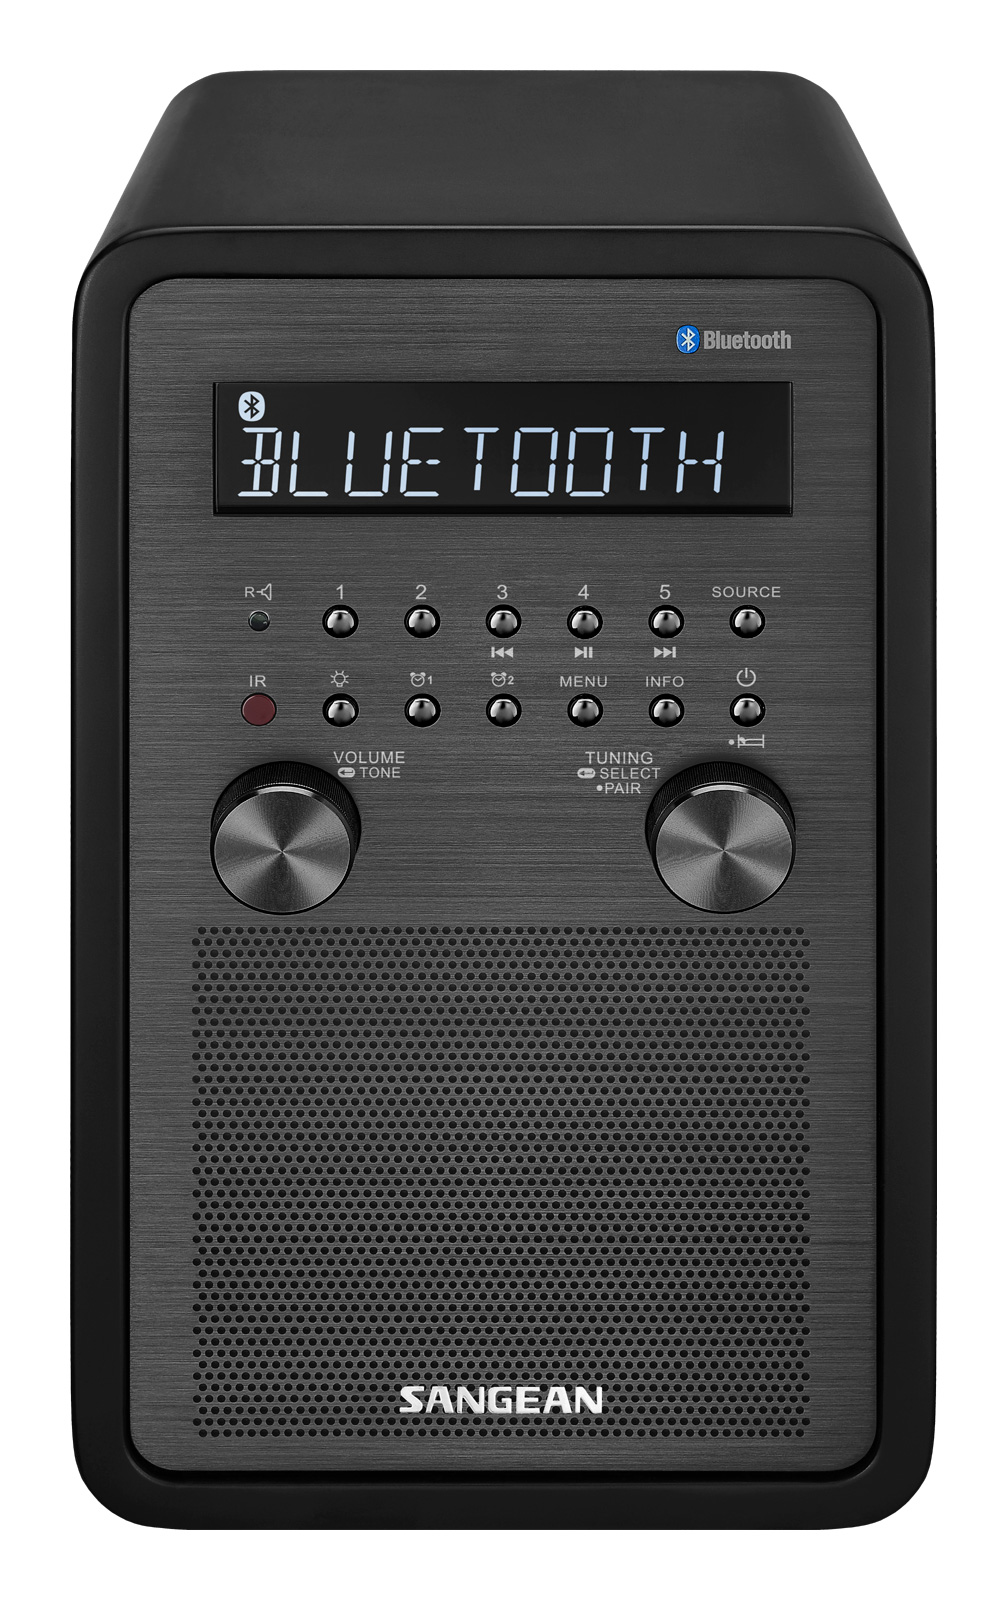 Sangean All in One Bluetooth AM FM Dual Alarm Clock Radio with Large Easy to Read Backlit LCD Display by Sangean